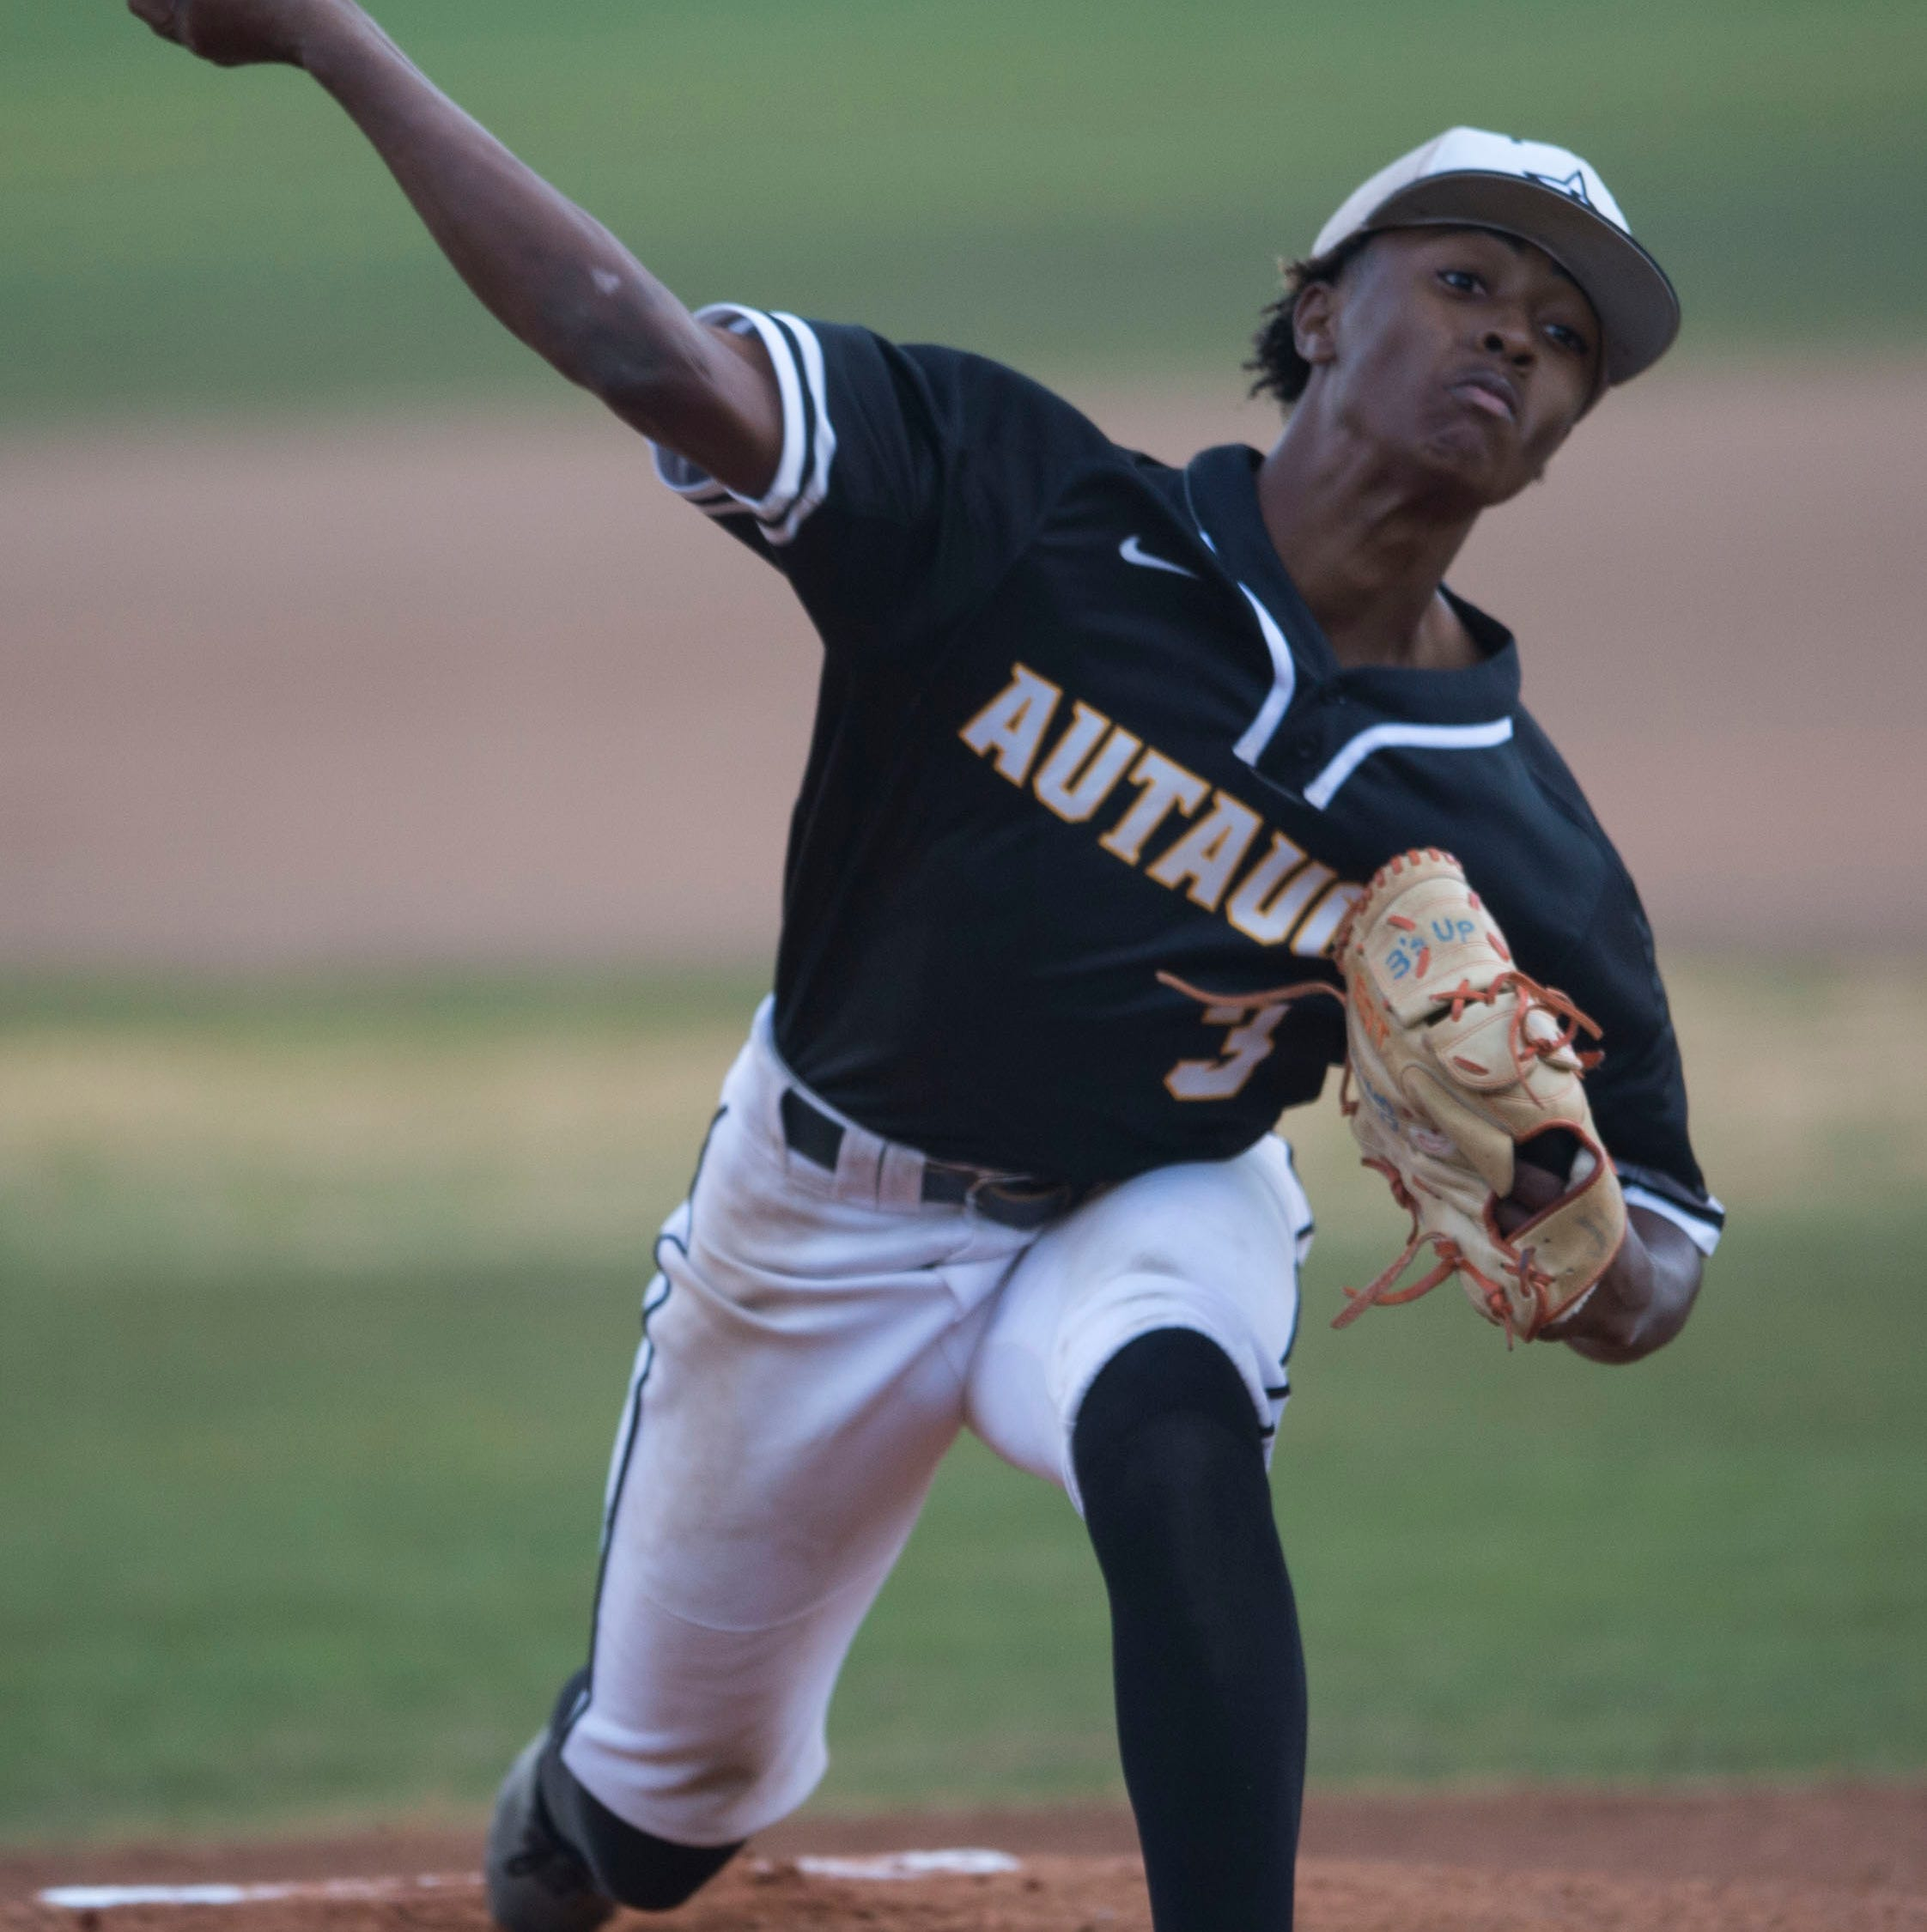 Autauga's Kyrin Long (3) pitches the ball against Edgewood at Autauga Academy in Prattville, Ala., on Tuesday, March 19, 2019.